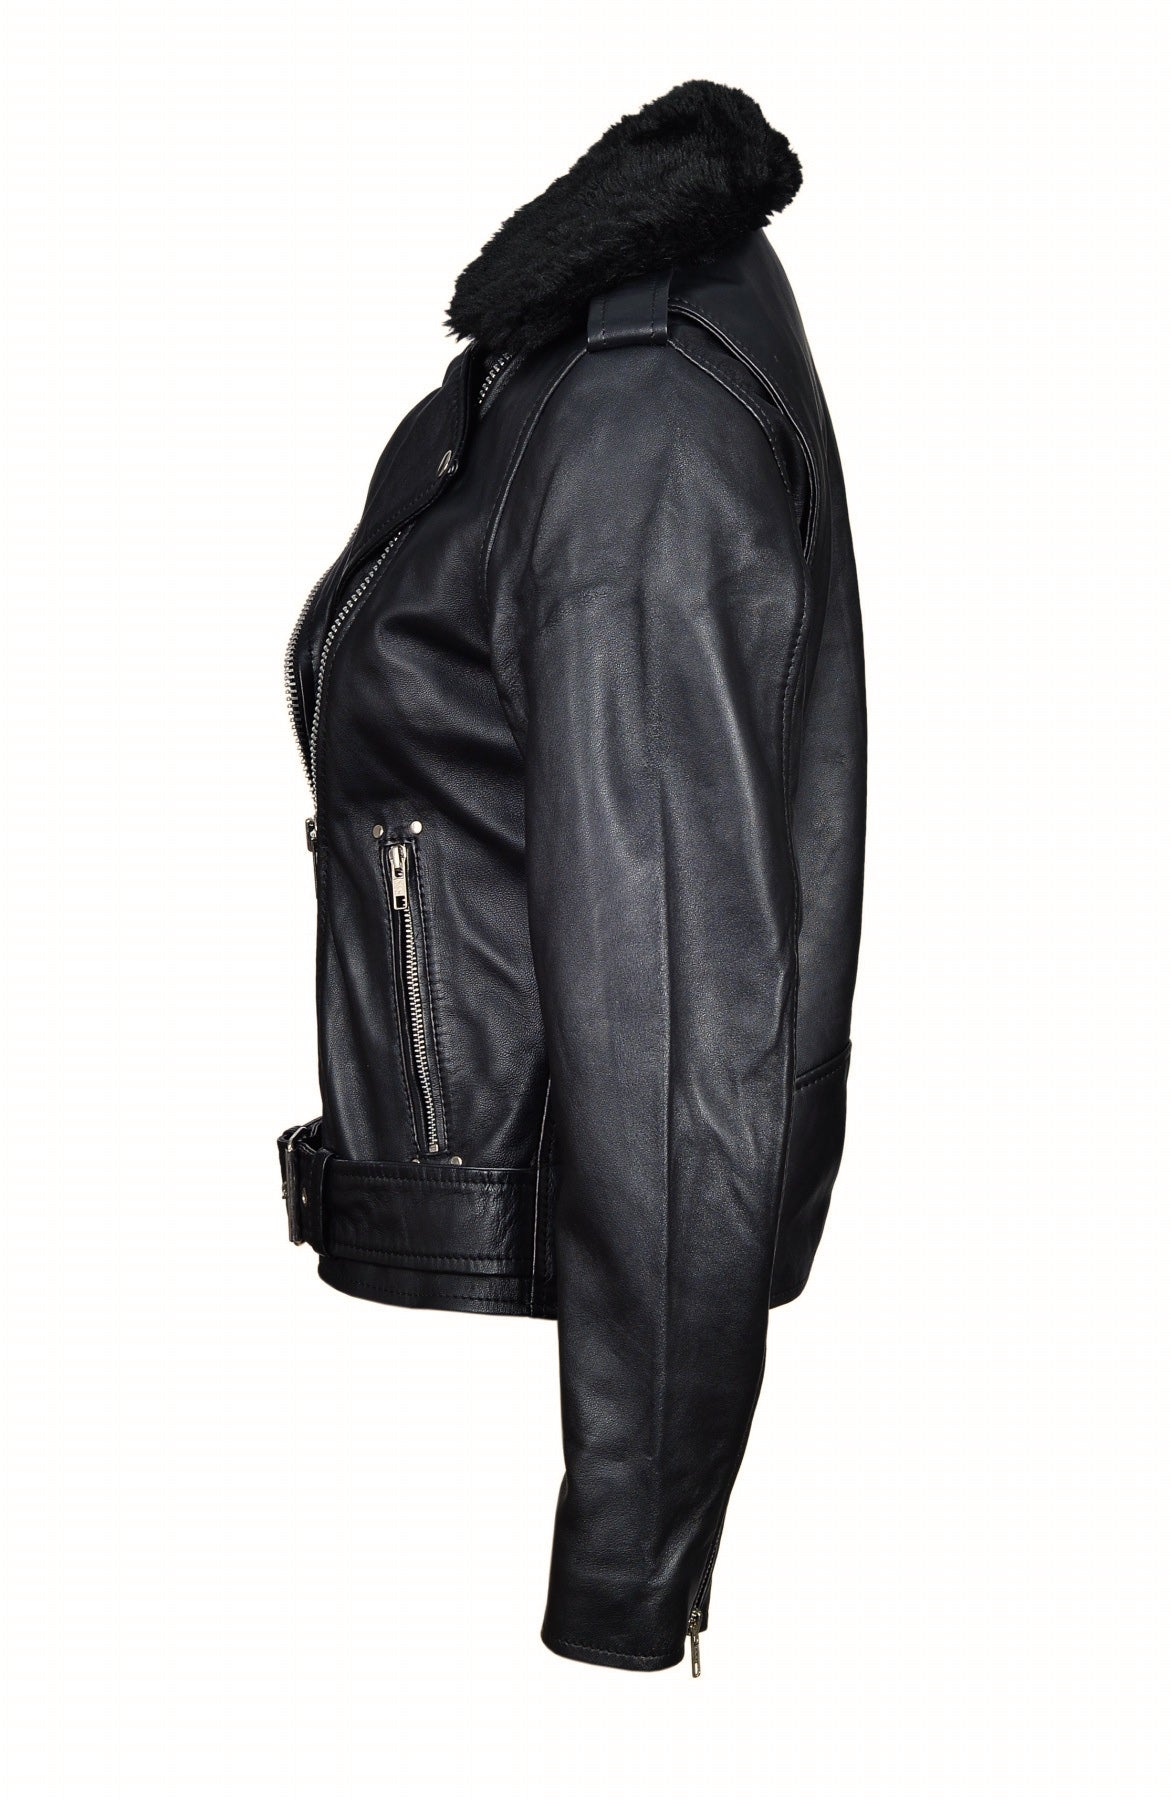 Eira's biker style leather jacket with fur collar